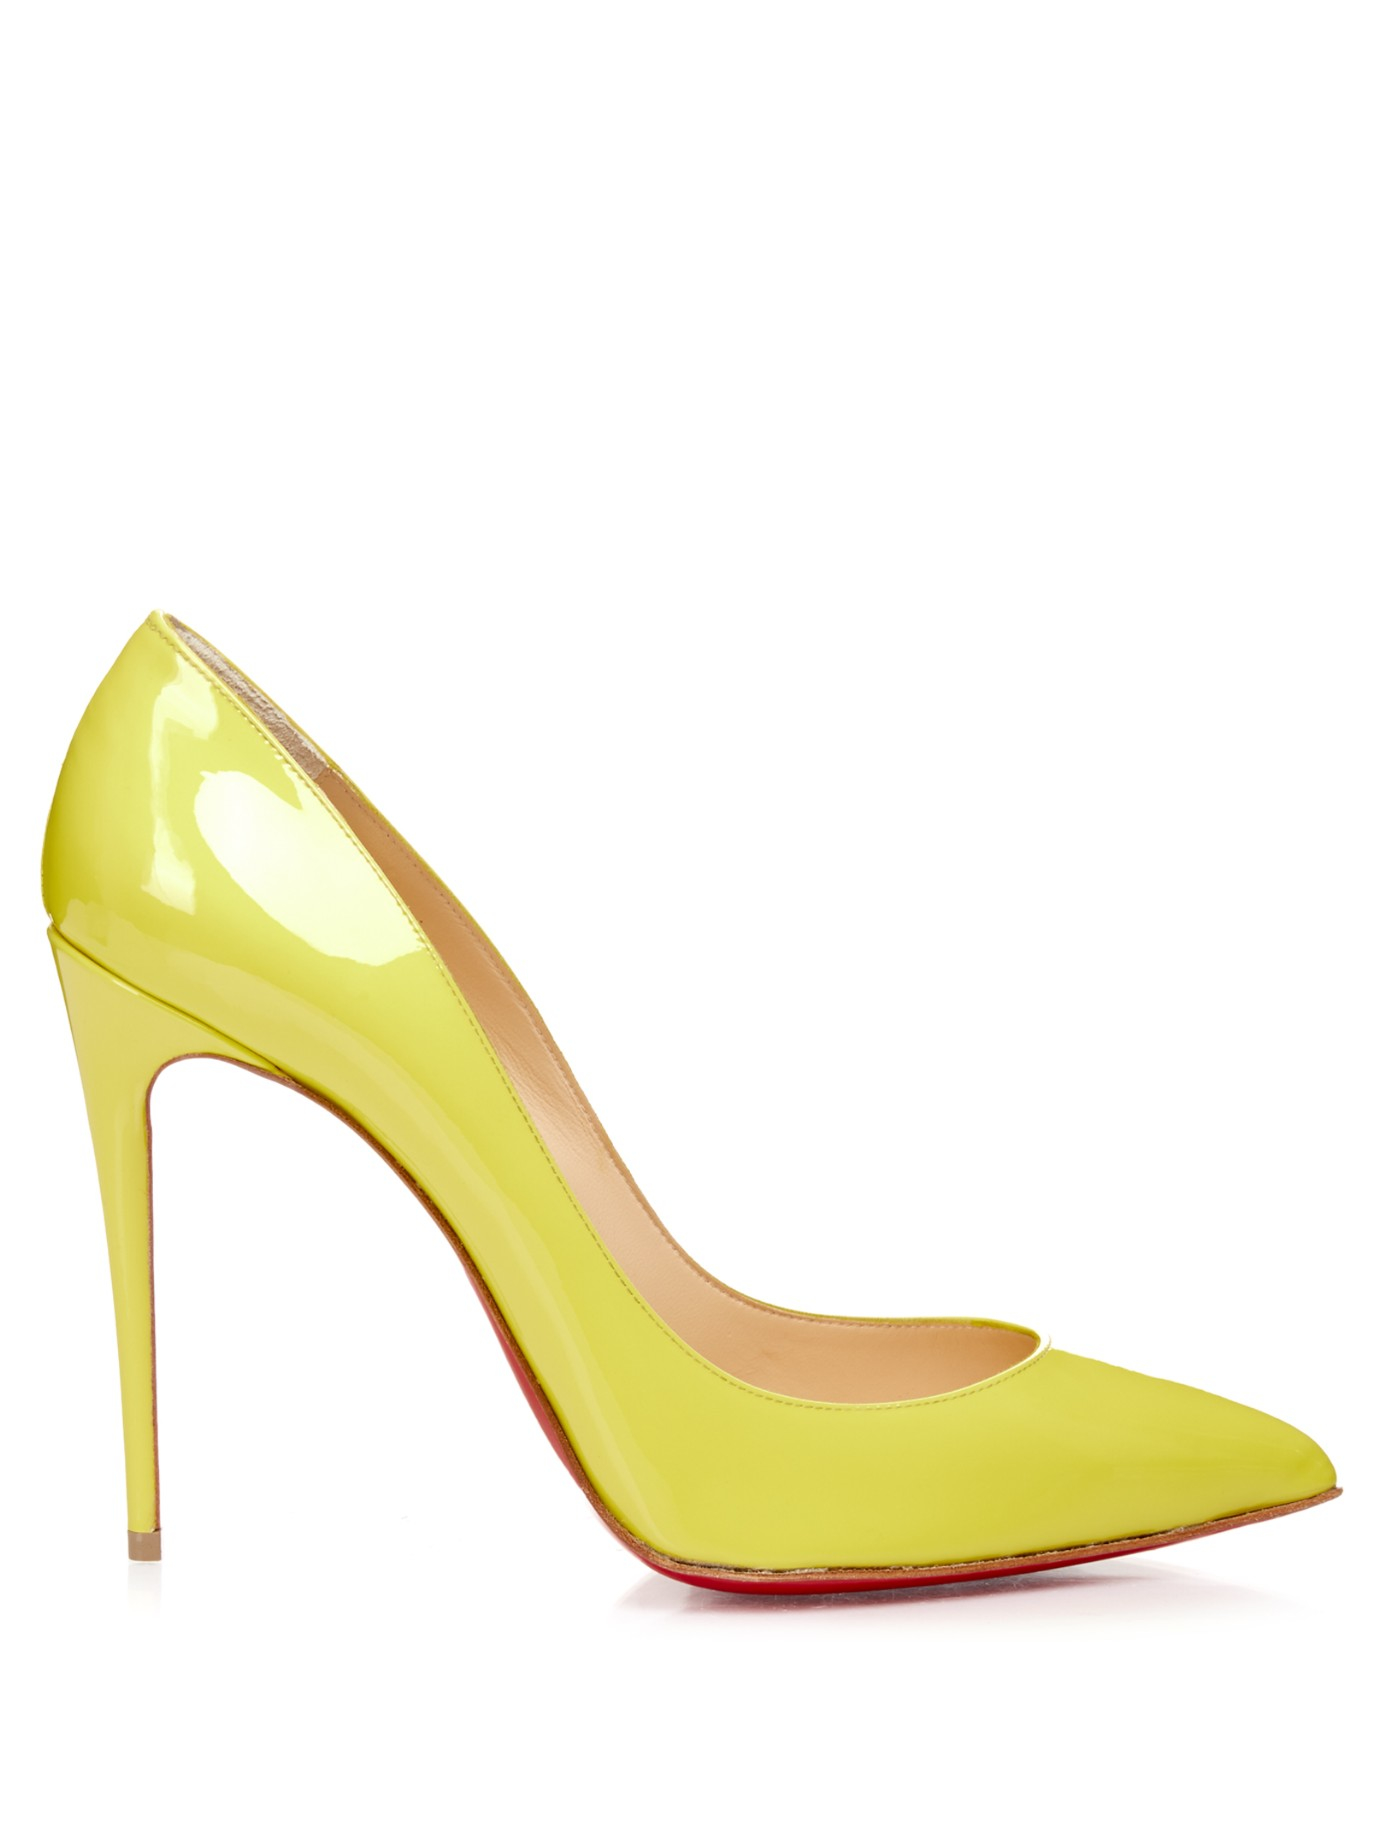 christian louboutin pigalles follies patent 100mm red sole ...